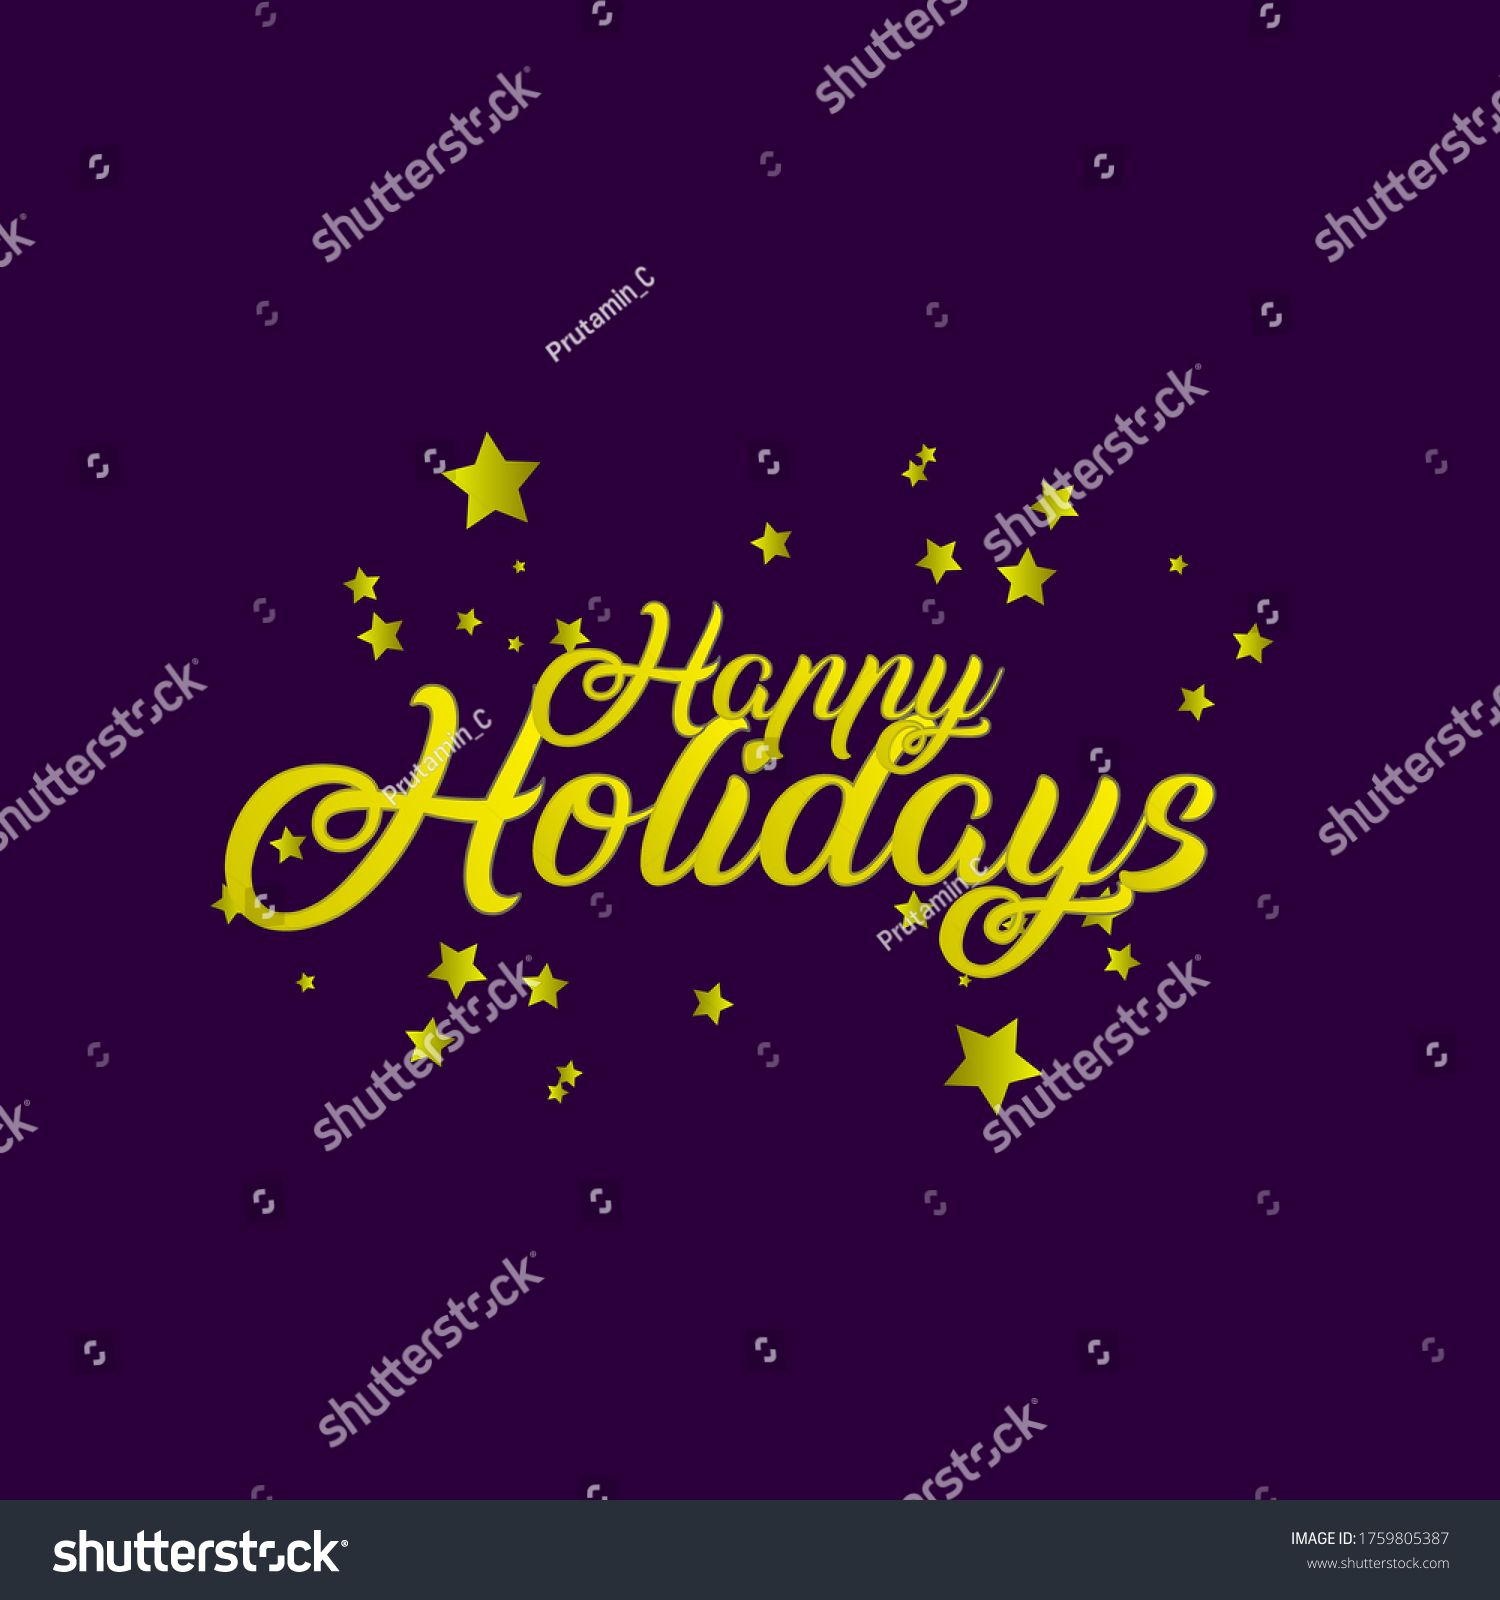 stock-vector-happy-holidays-beautiful-te